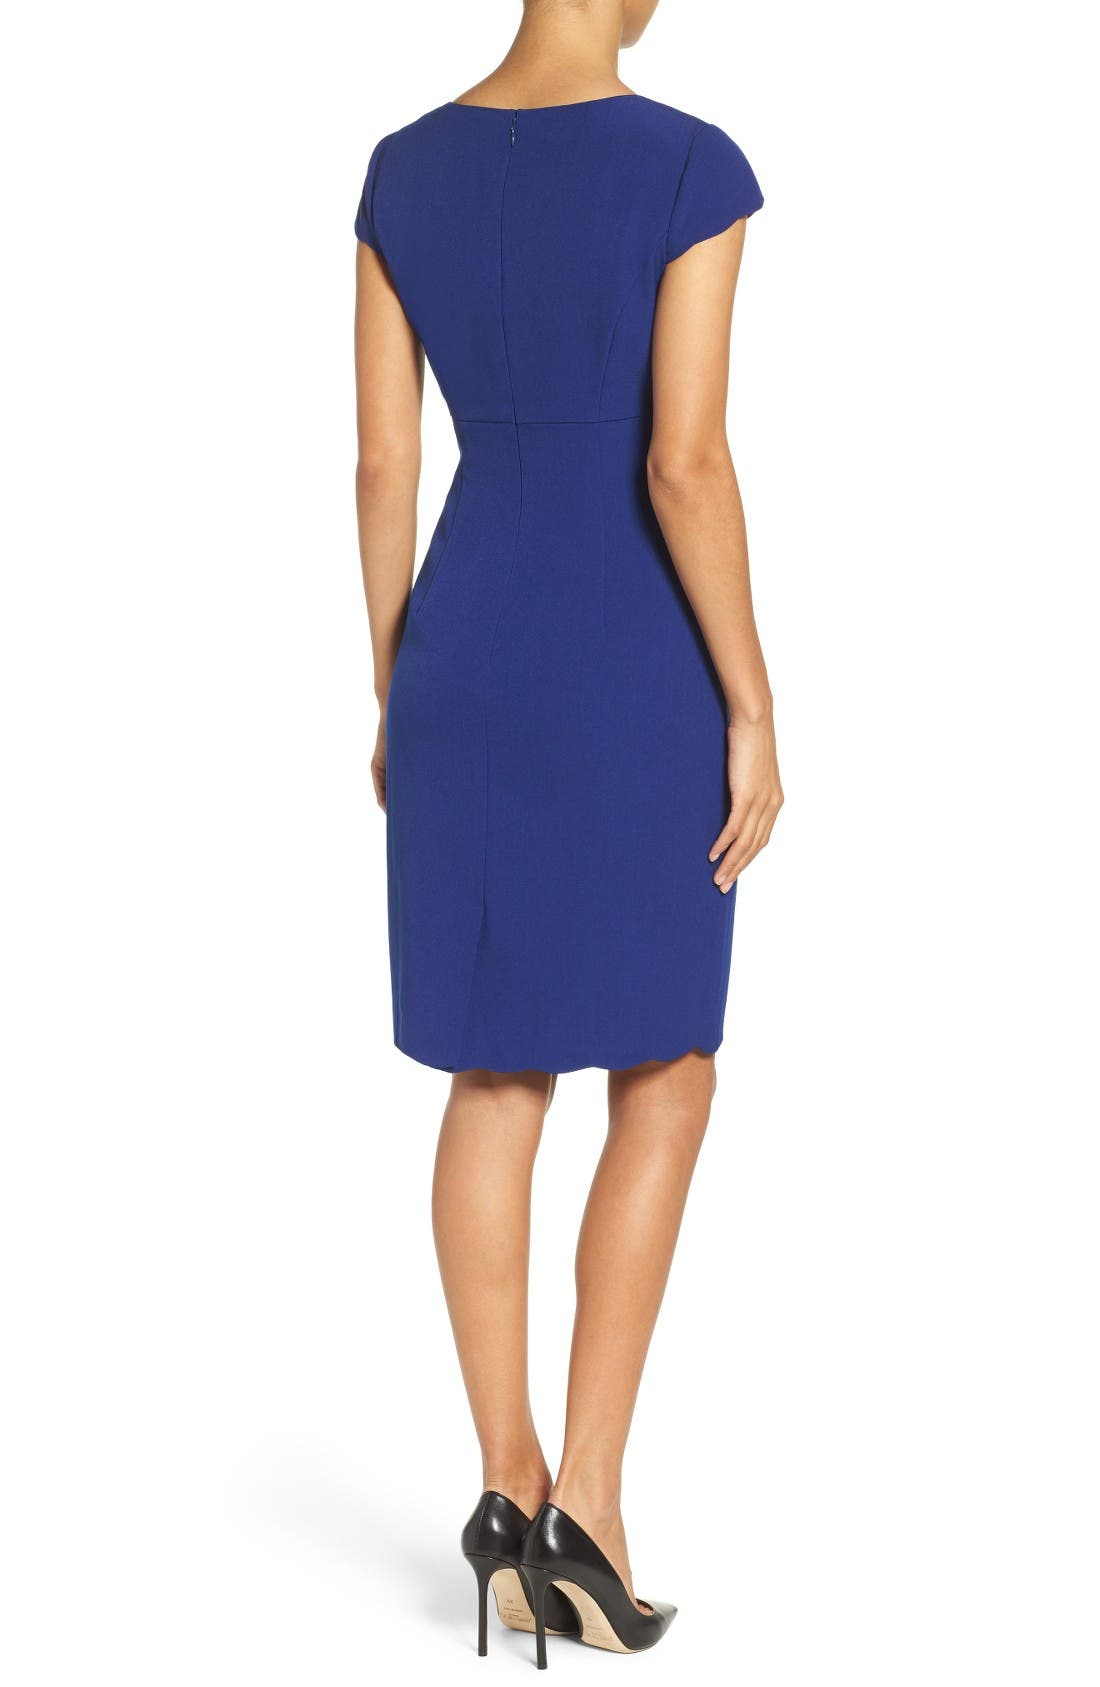 Alternate Image 2  - Adrianna Papell Scalloped Crepe Sheath Dress (Regular & Petite)